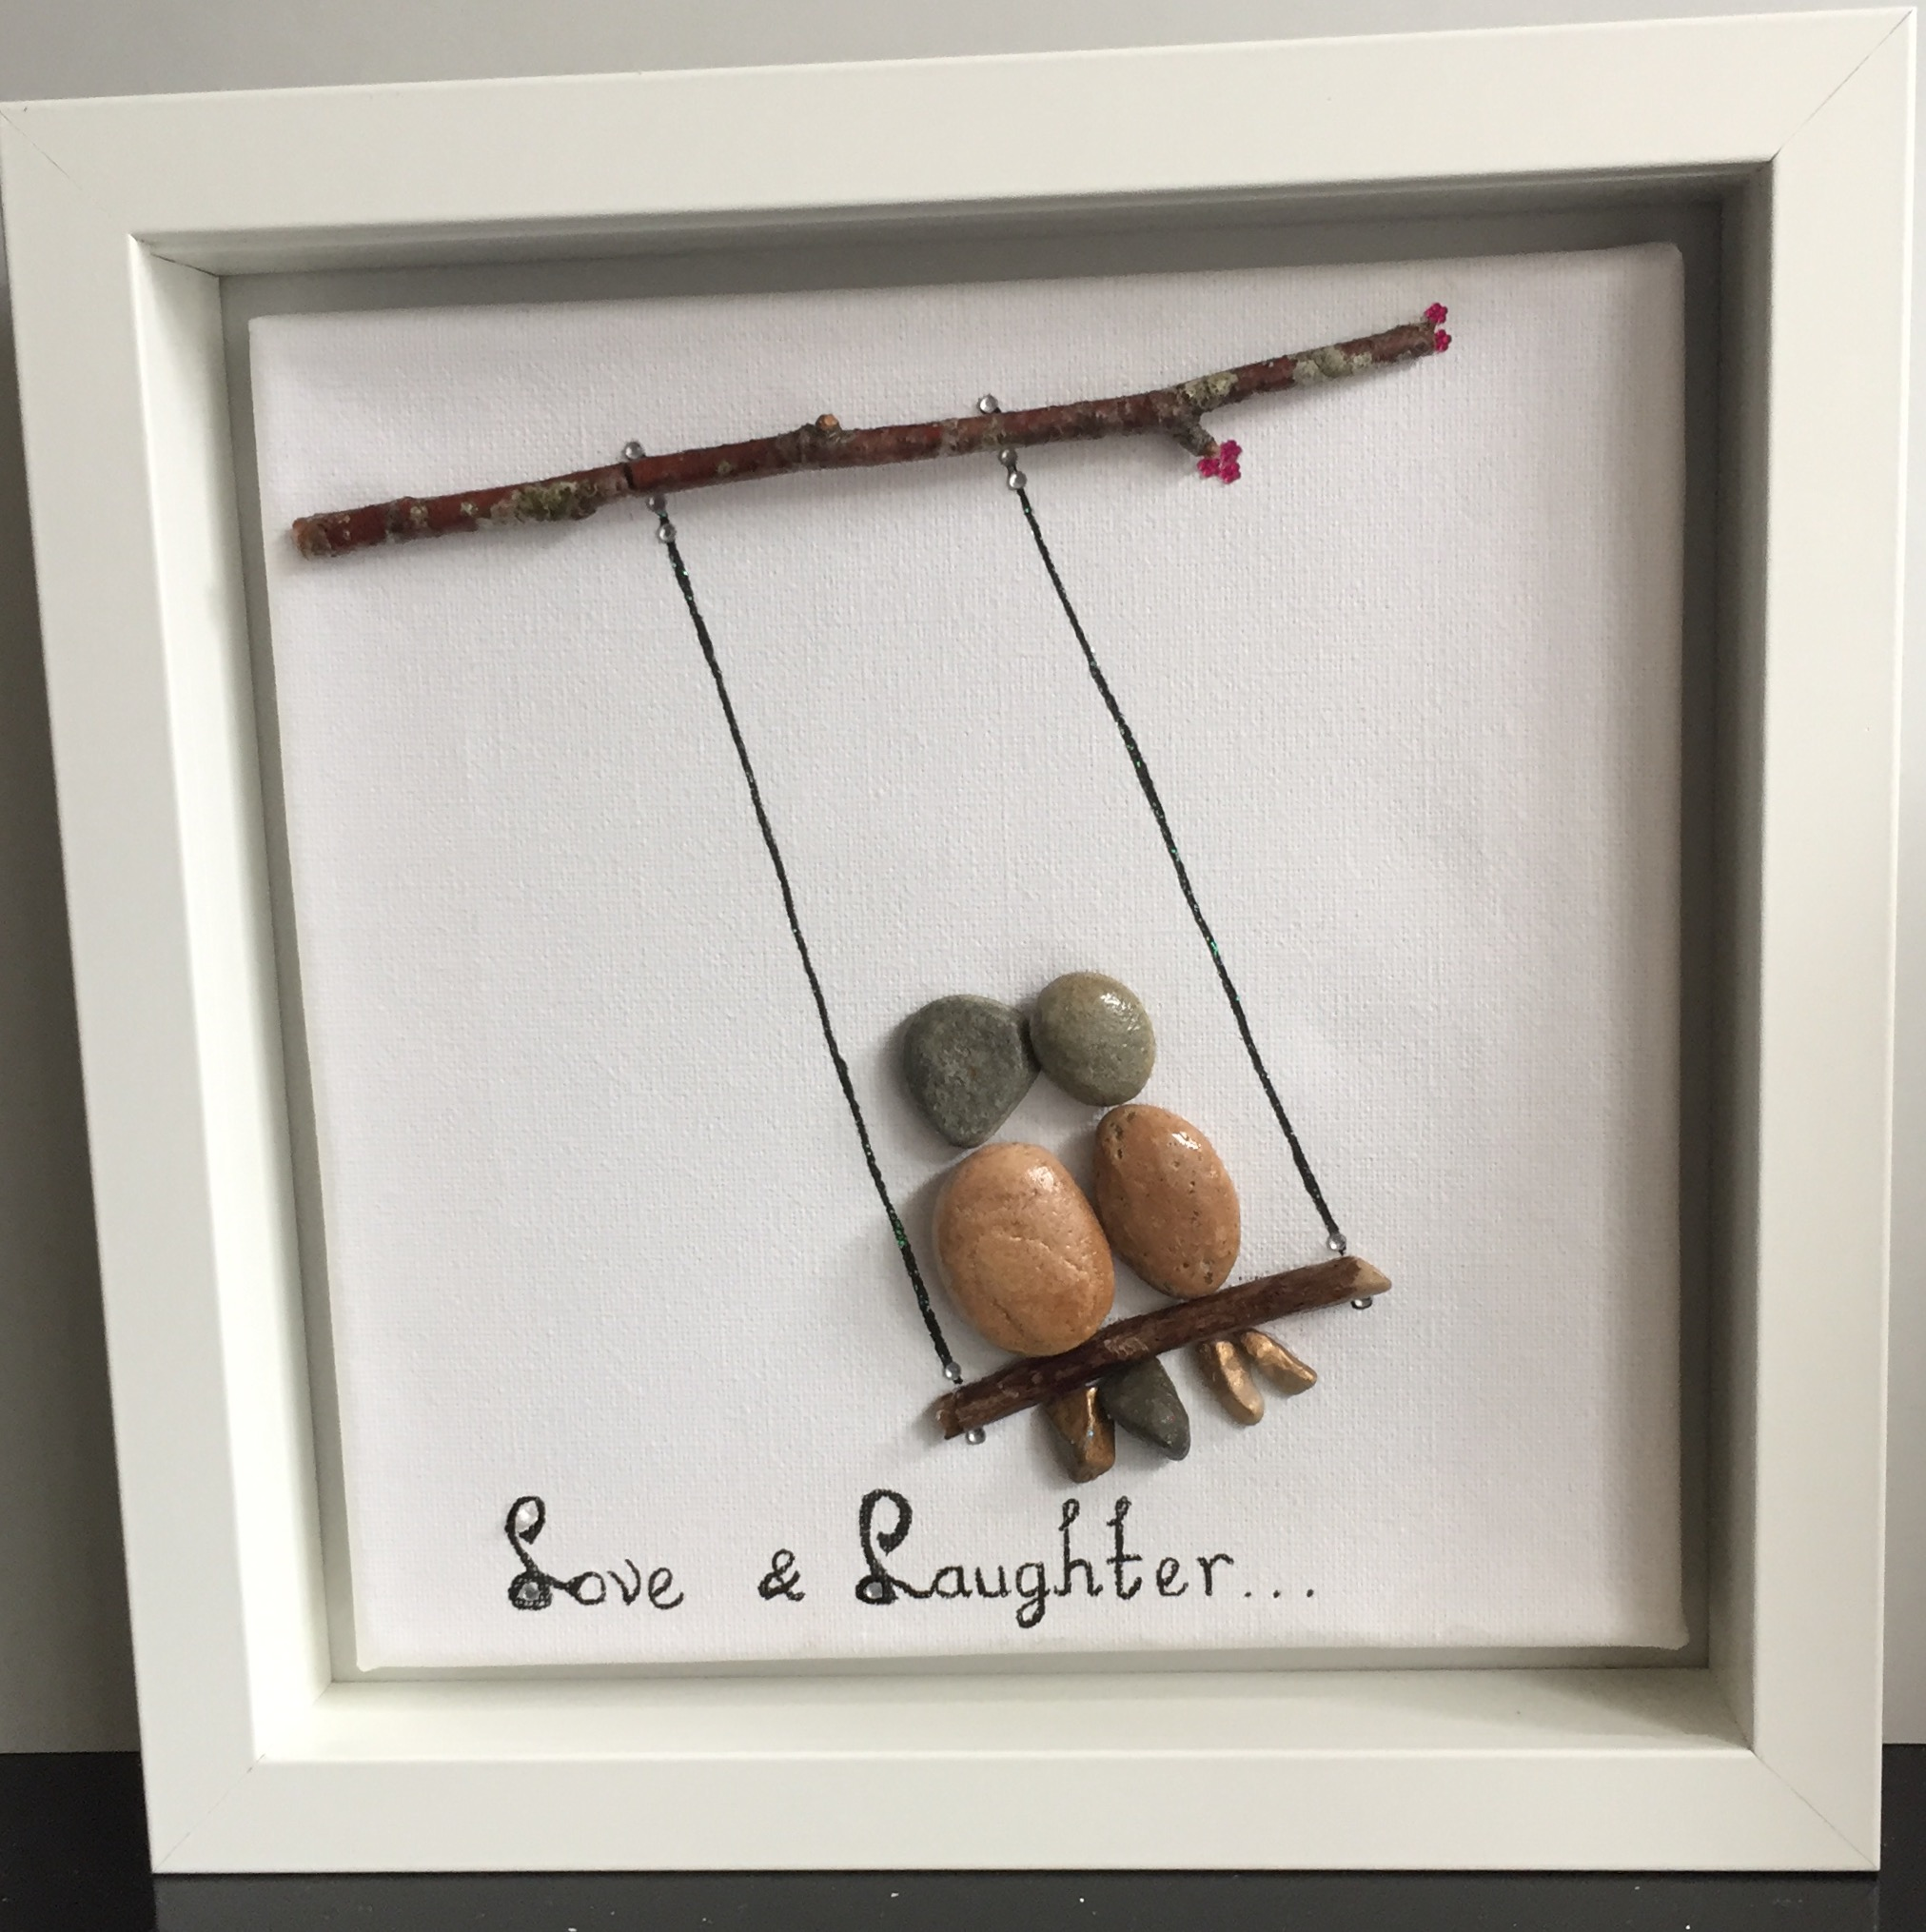 Pebble Art Unframed: Laugh Couple on a Swing